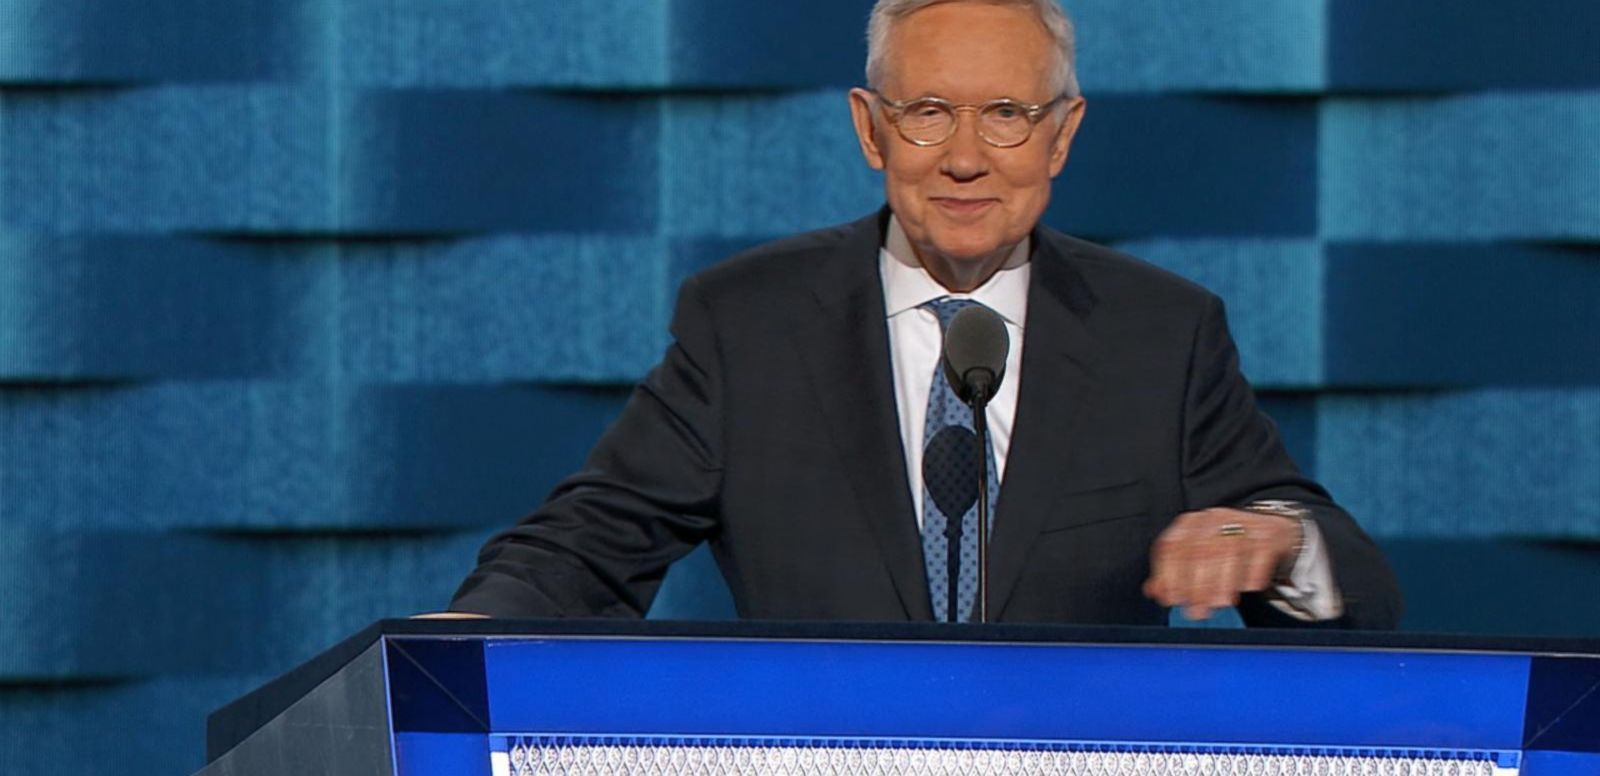 VIDEO: Harry Reid Addresses 2016 Democratic National Convention